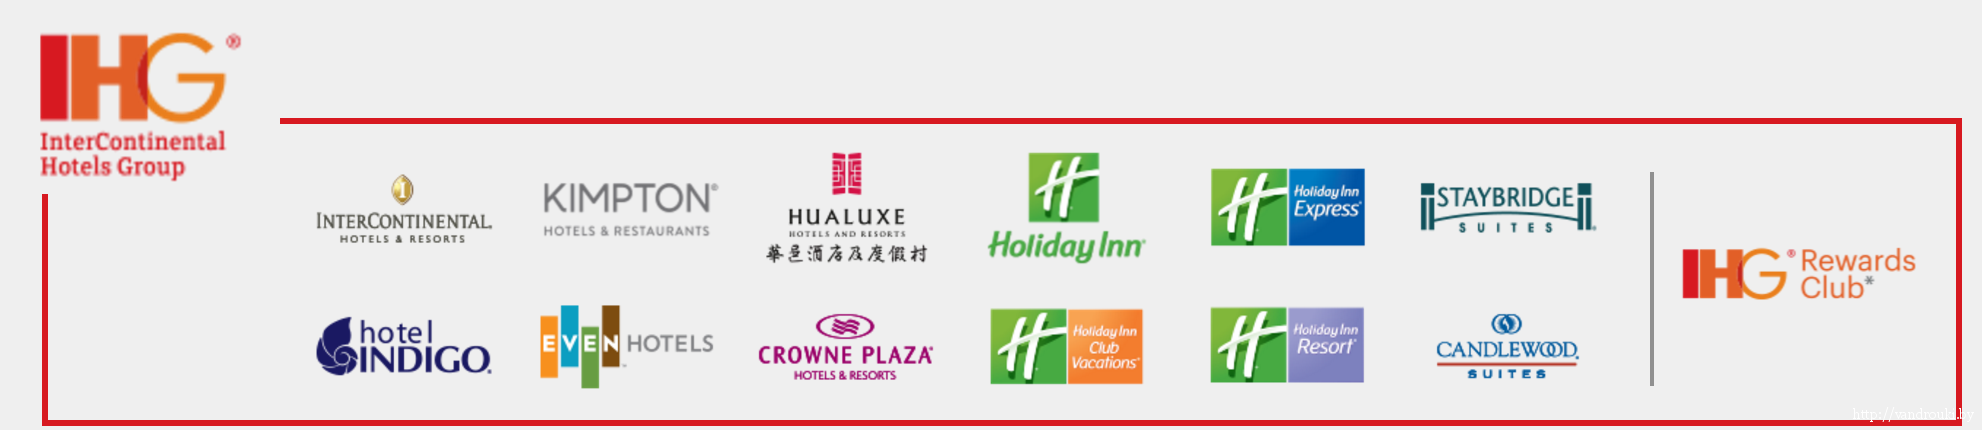 intercontinental hotels group plc Intercontinental hotels group plc, incorporated on may 21, 2004, is a hotel company the company franchises its brands to, and manages hotels on behalf of, third-party hotel owners.